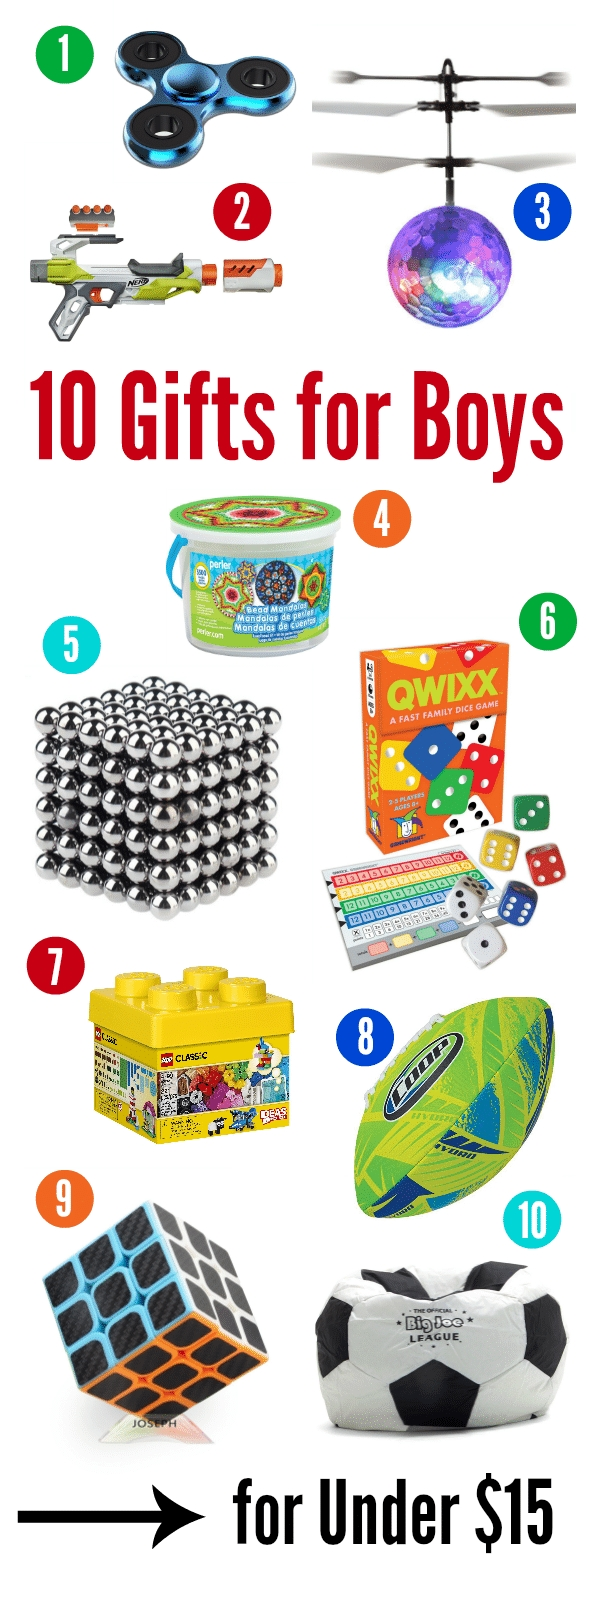 10 Best 10 Year Old Boy Christmas Gift Ideas 10 best gifts for a 10 year old boy for under 15 fun squared 11 2021